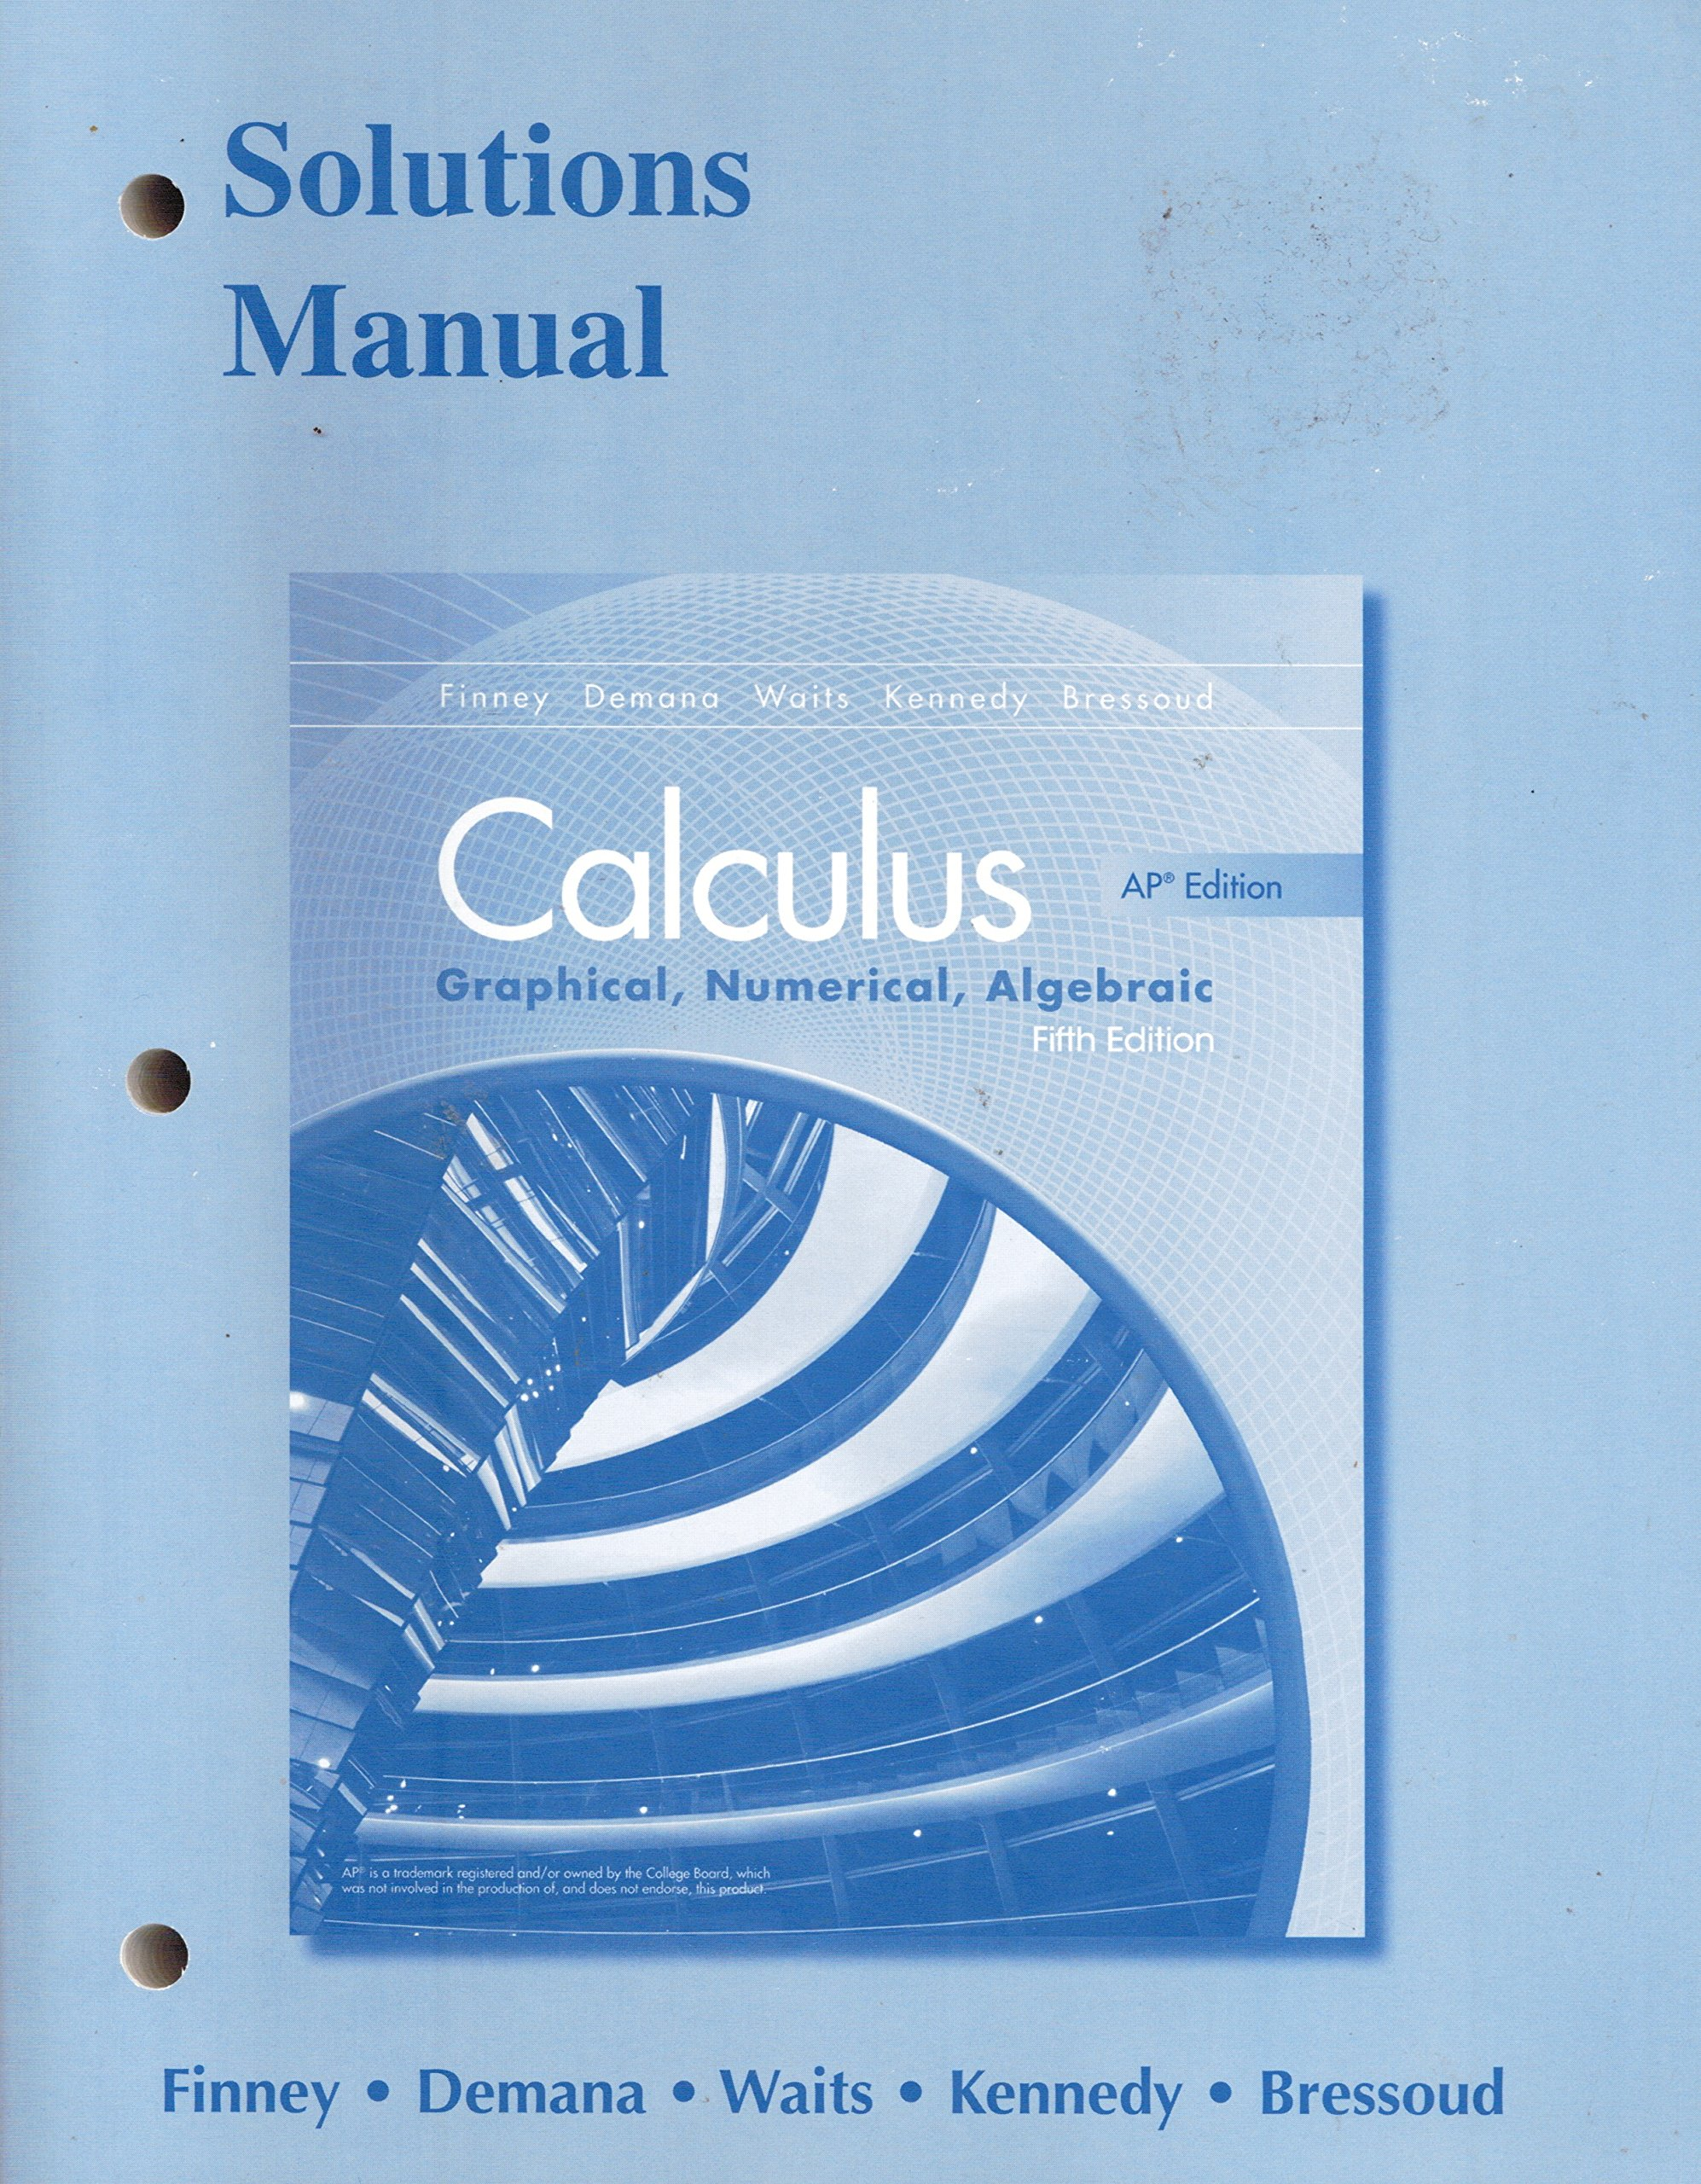 Calculus AP Edition: Graphical, Numerical, Algebraic: Solutions Manual:  Ross L. Finney, Franklin D. Demana, Bert K. Waits, Daniel Kennedy, ...